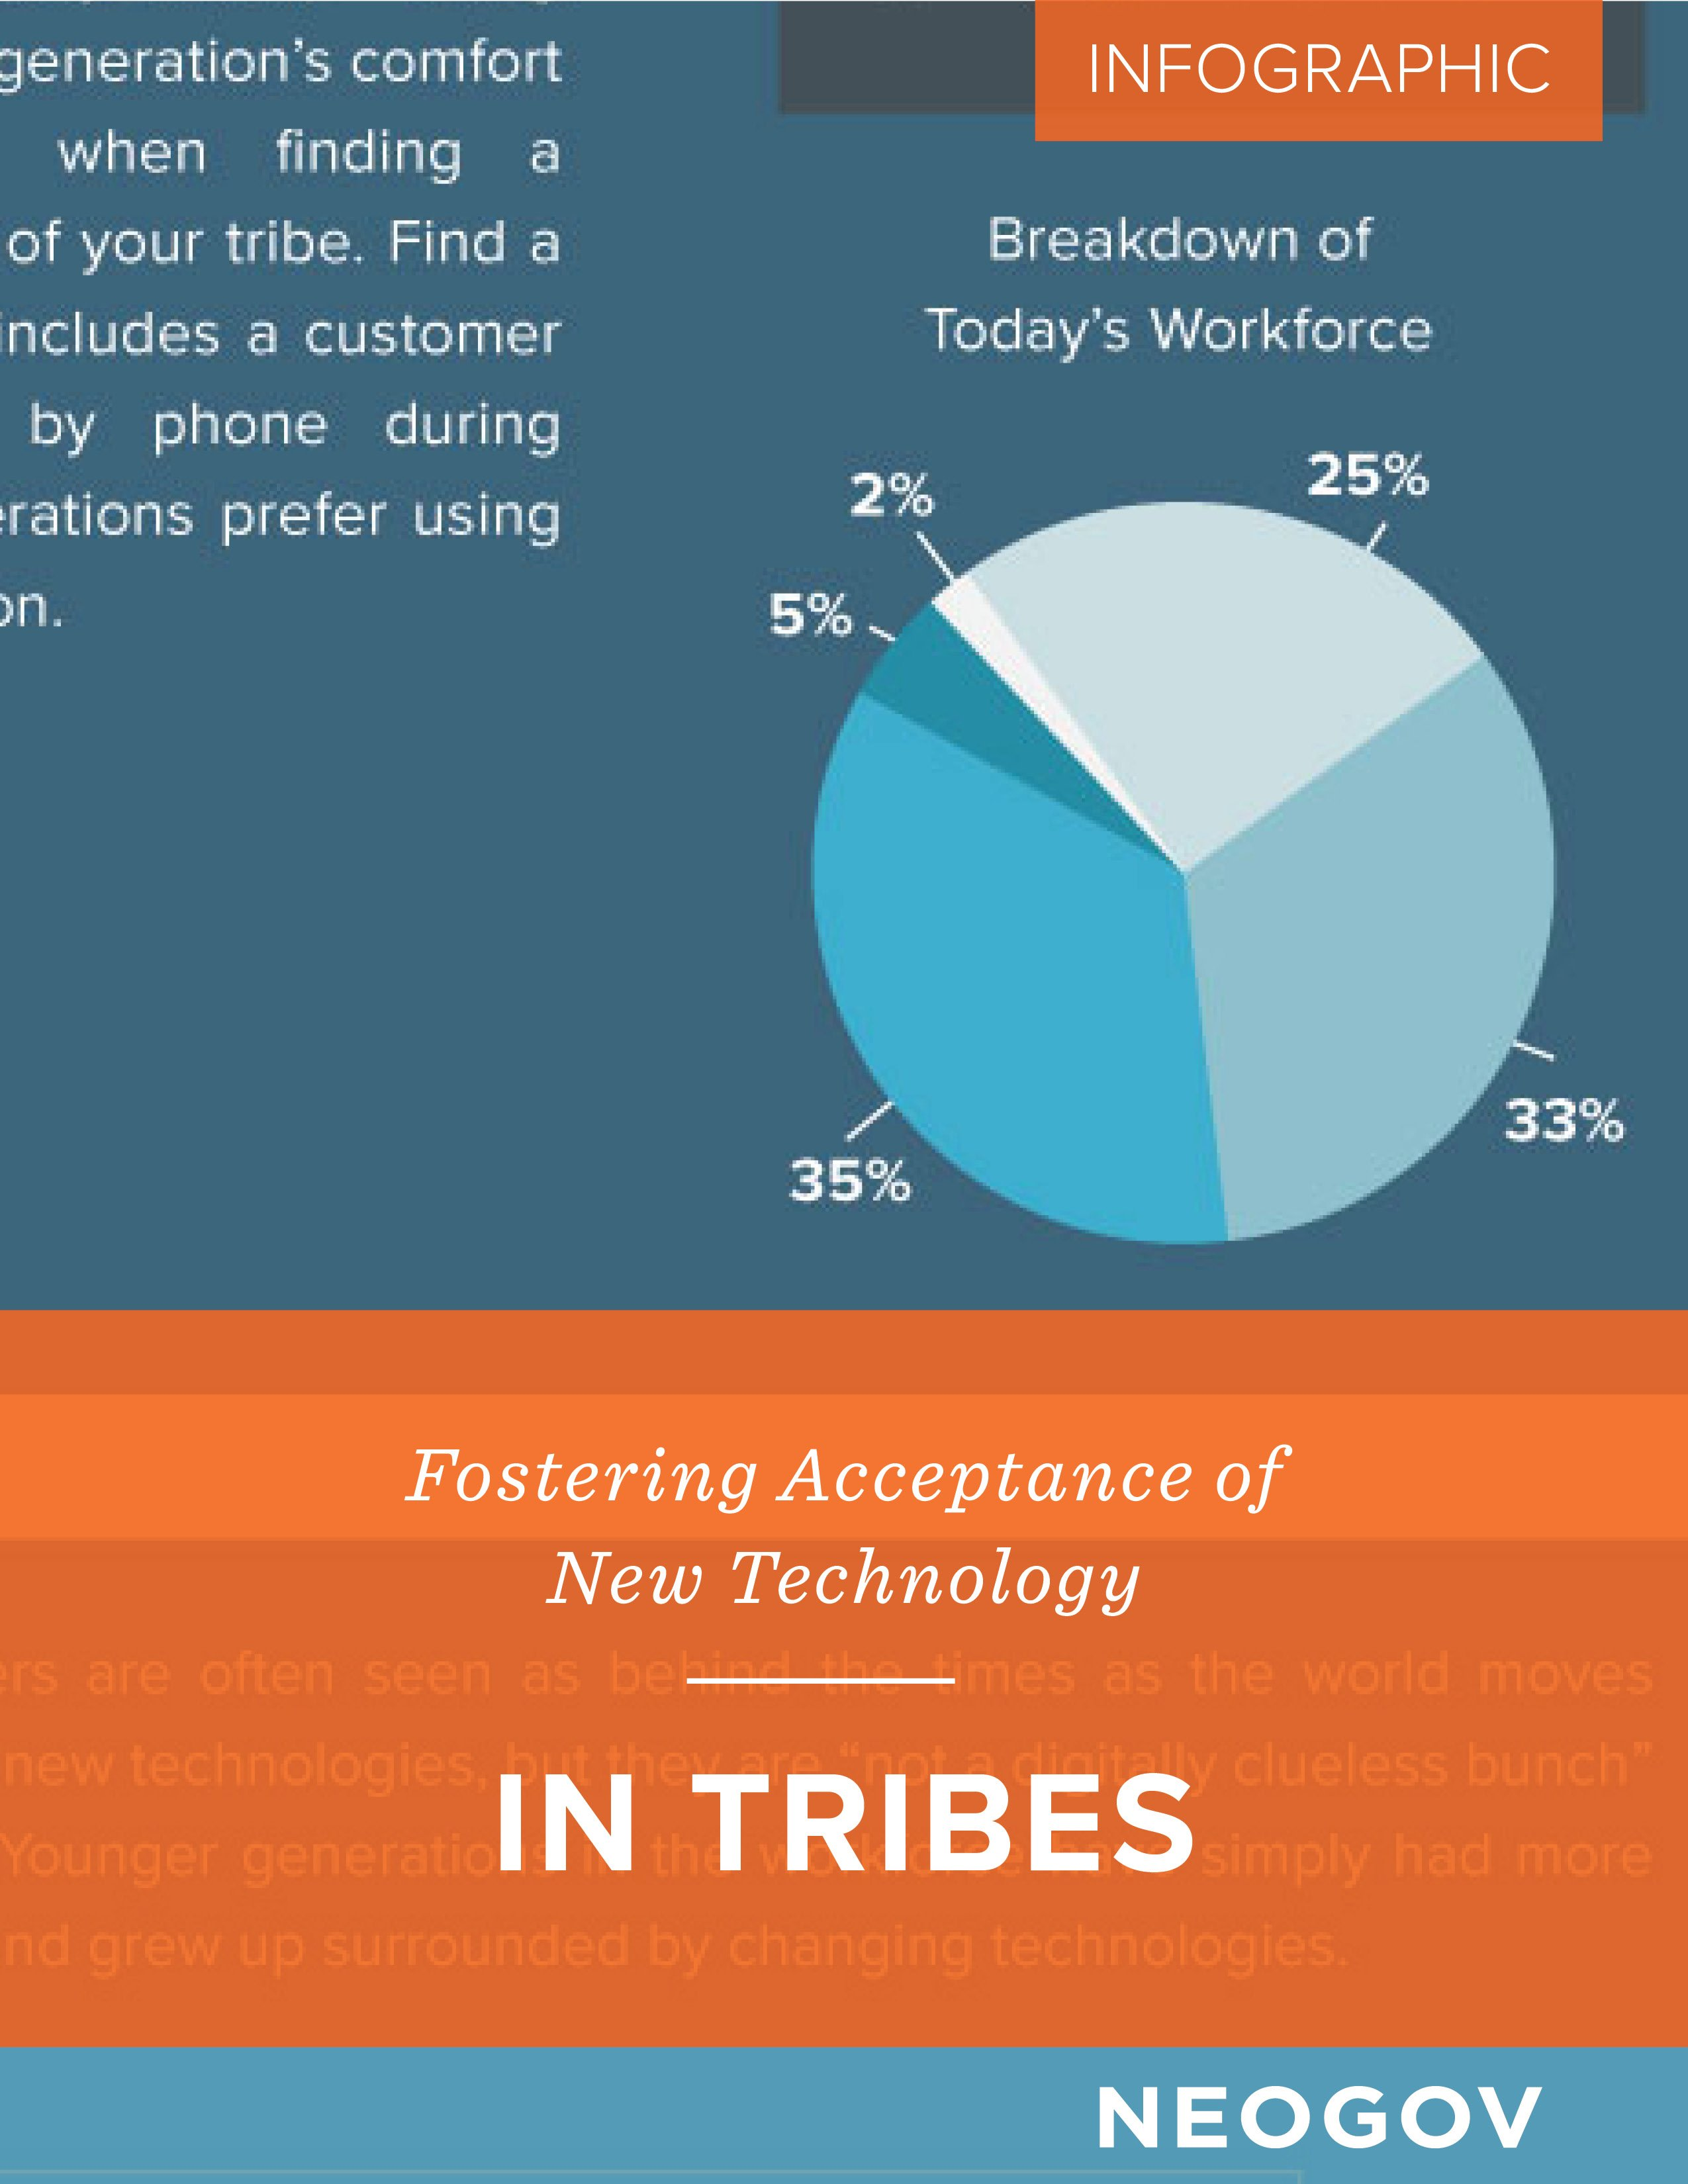 NGV-Infographic-TechforTribes